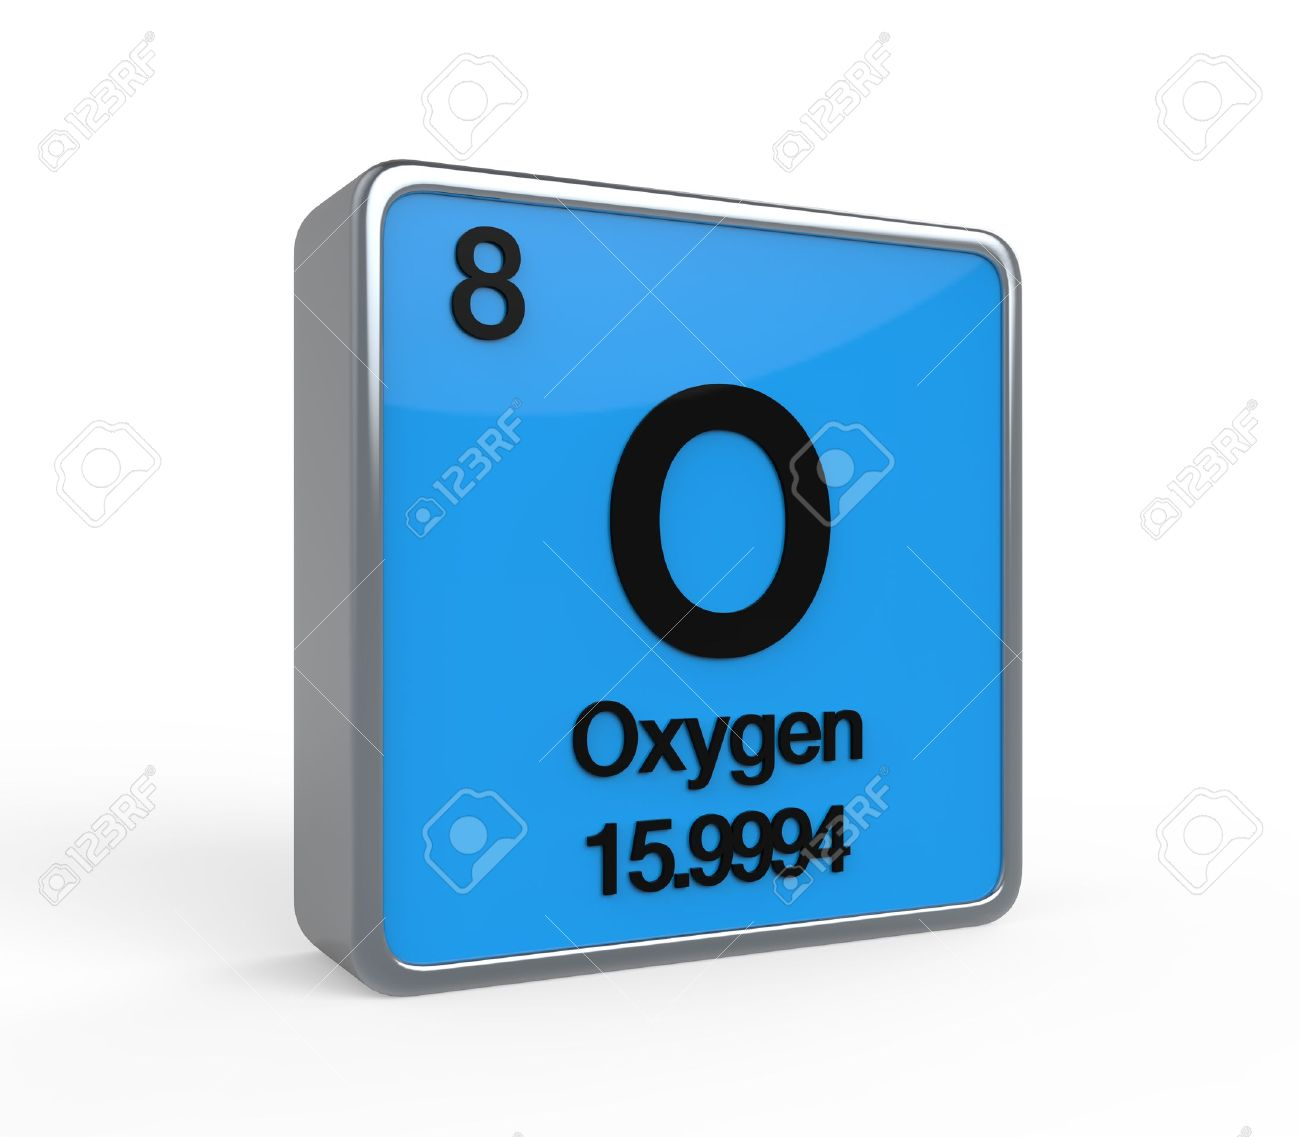 Oxygen element periodic table stock photo picture and royalty free oxygen element periodic table stock photo 20429786 urtaz Images